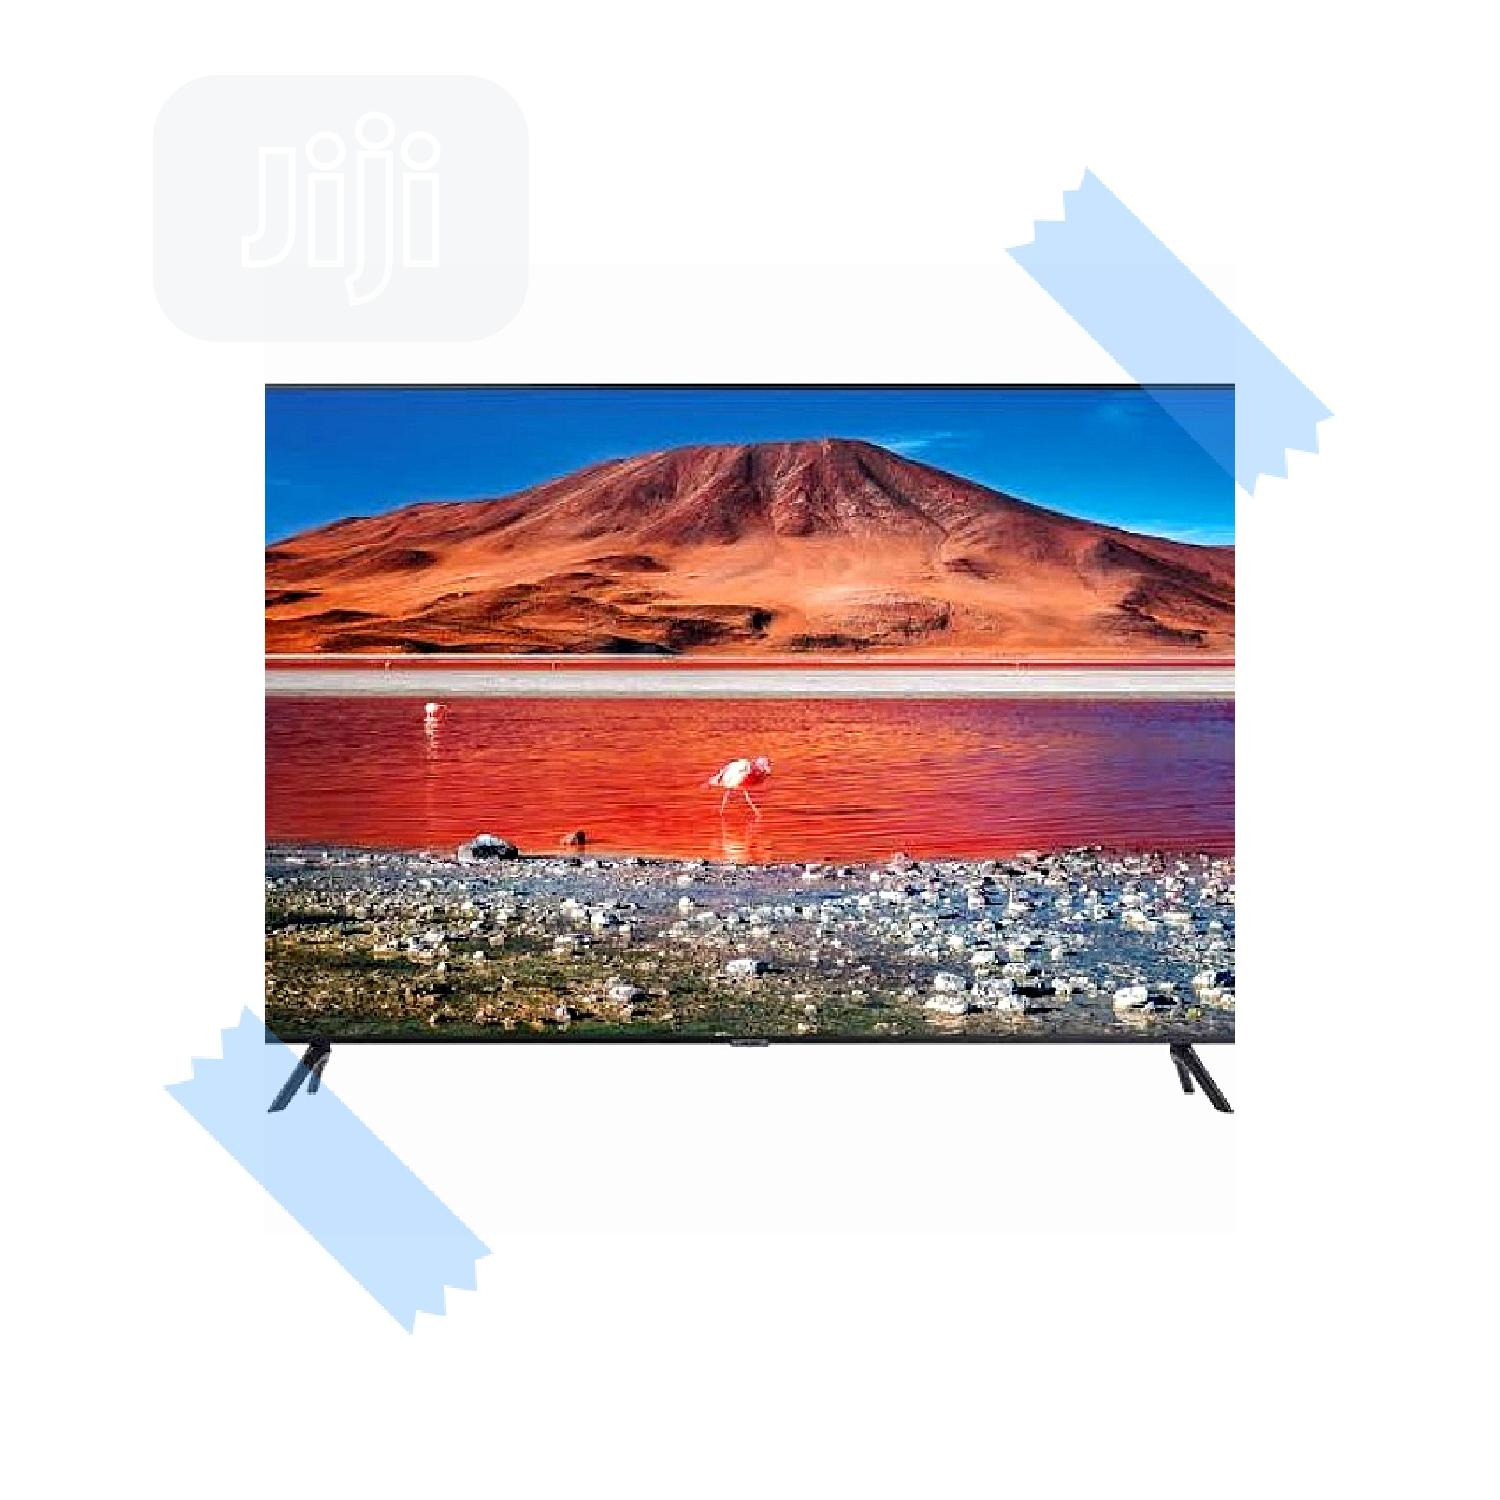 Samsung 55 Inch UHD SMART TV